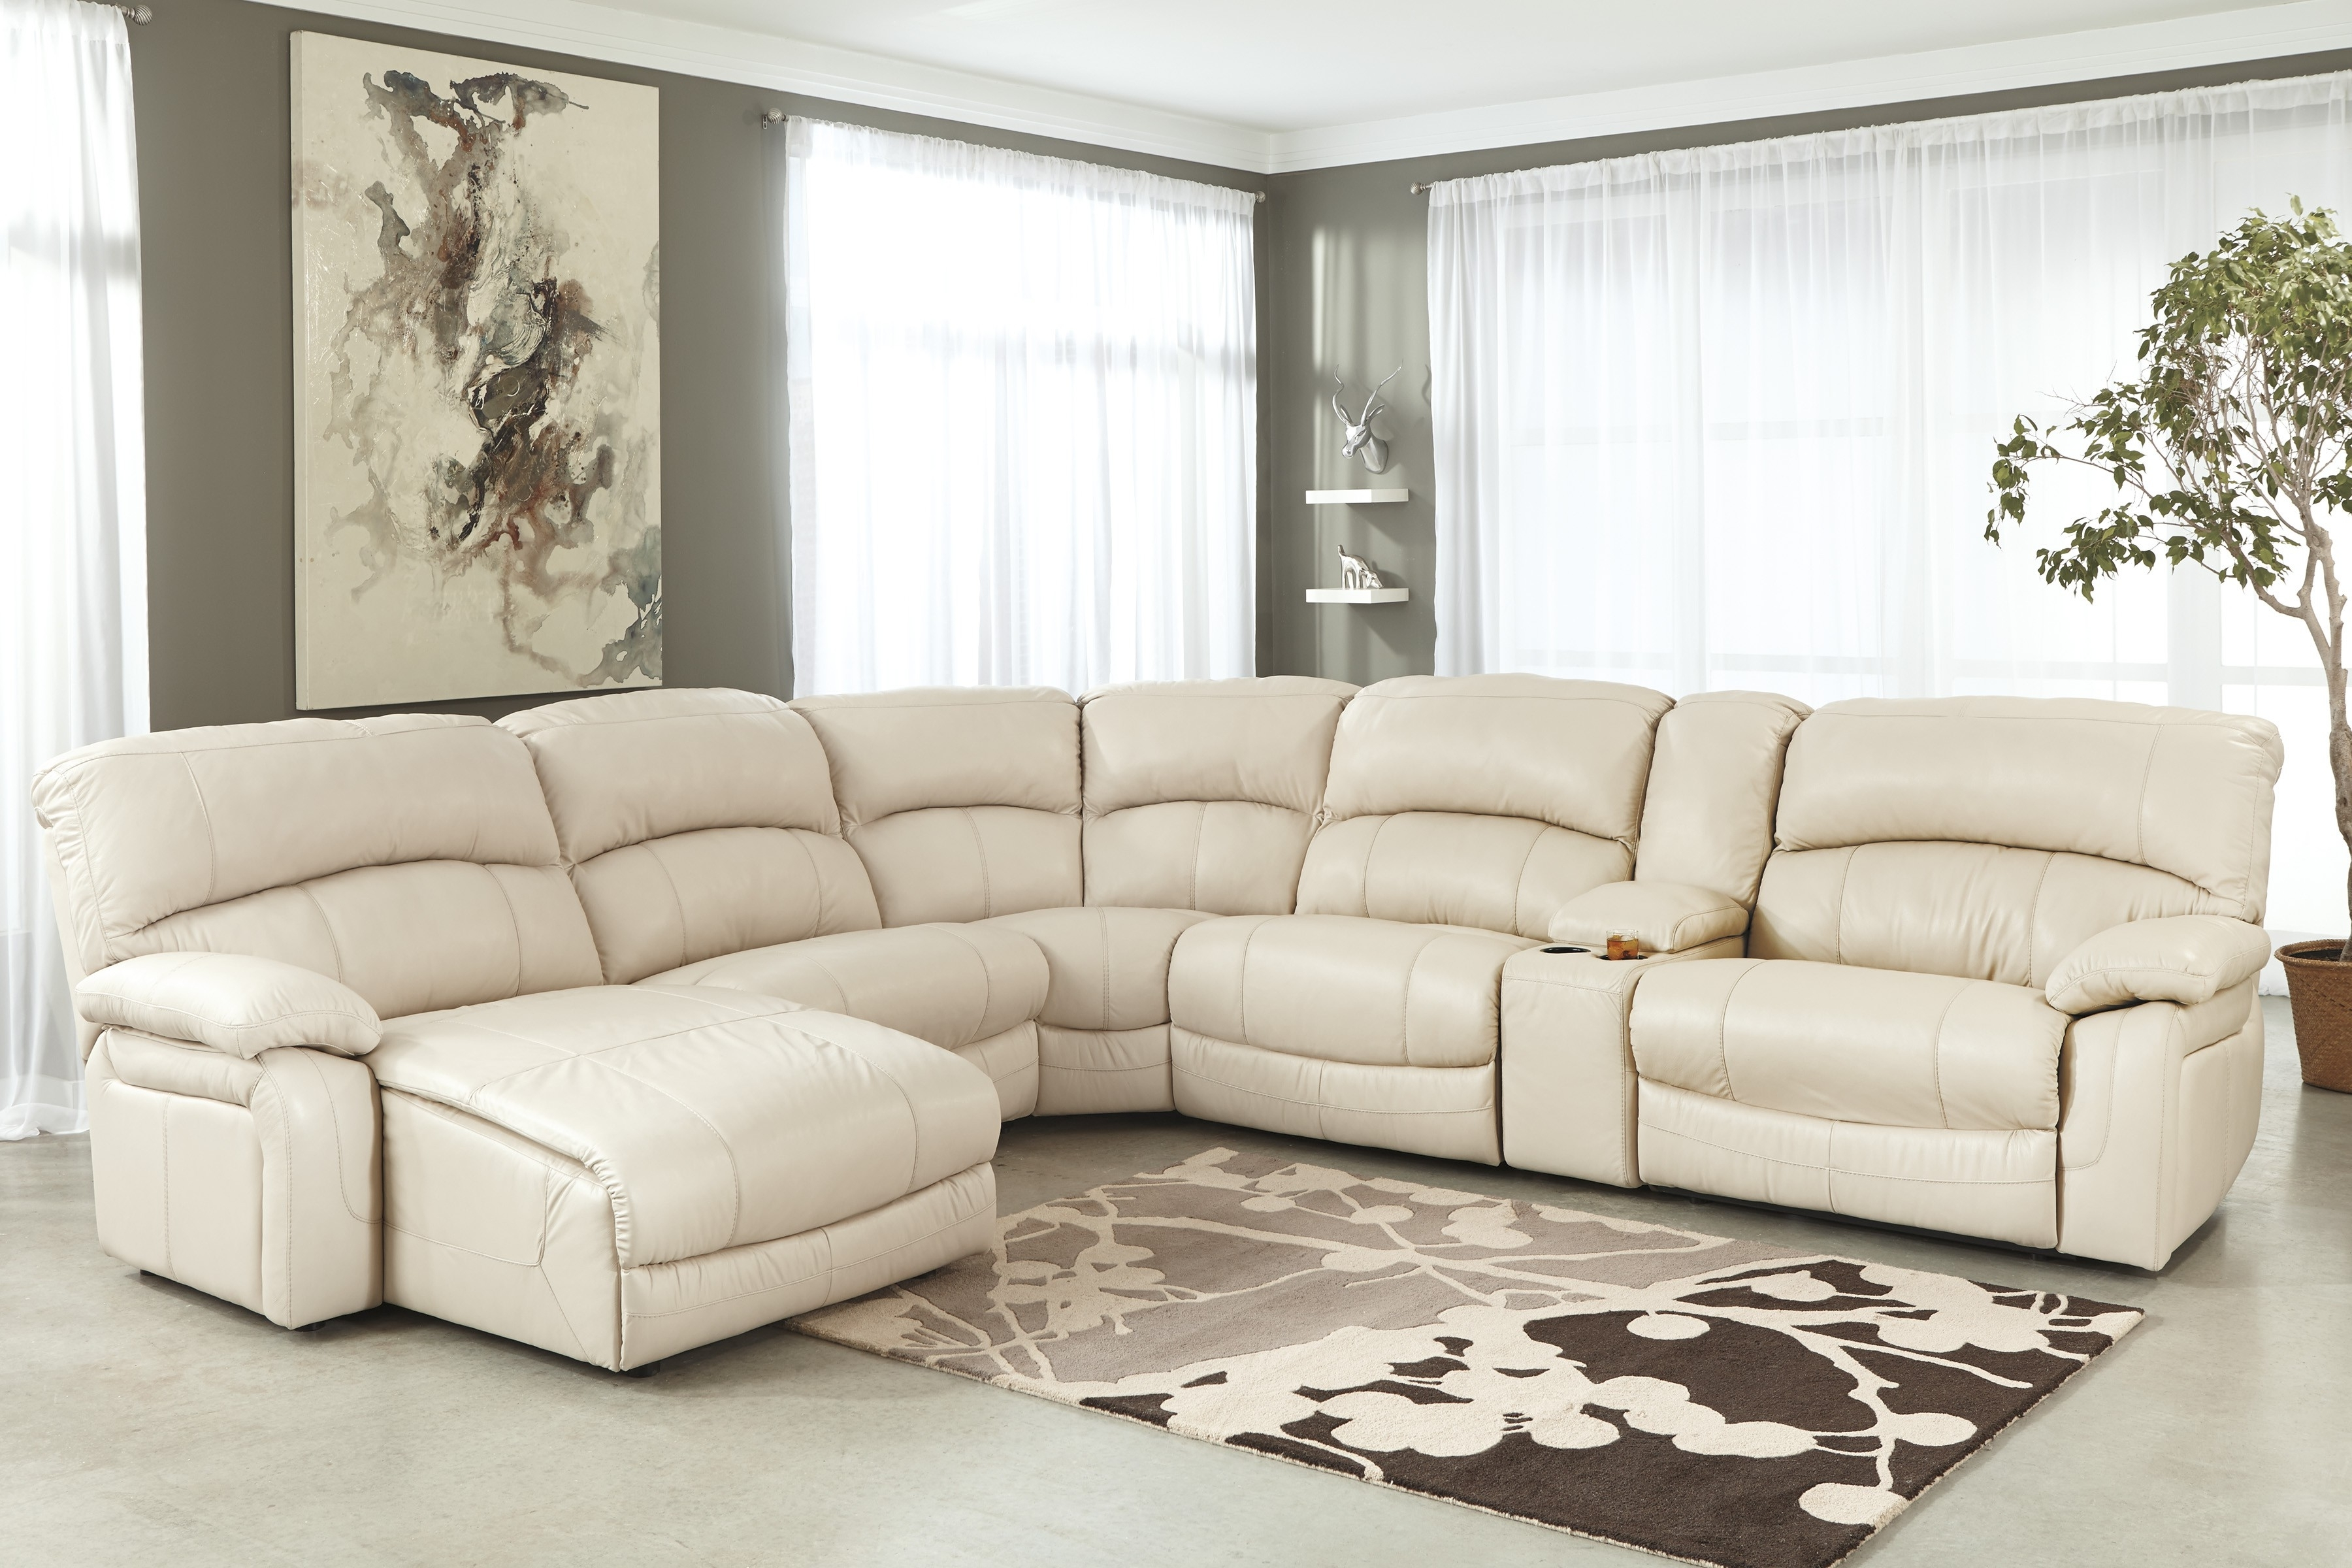 Off White Leather Sofas Inside Trendy Emejing Off White Leather Furniture Pictures – Liltigertoo (View 12 of 15)